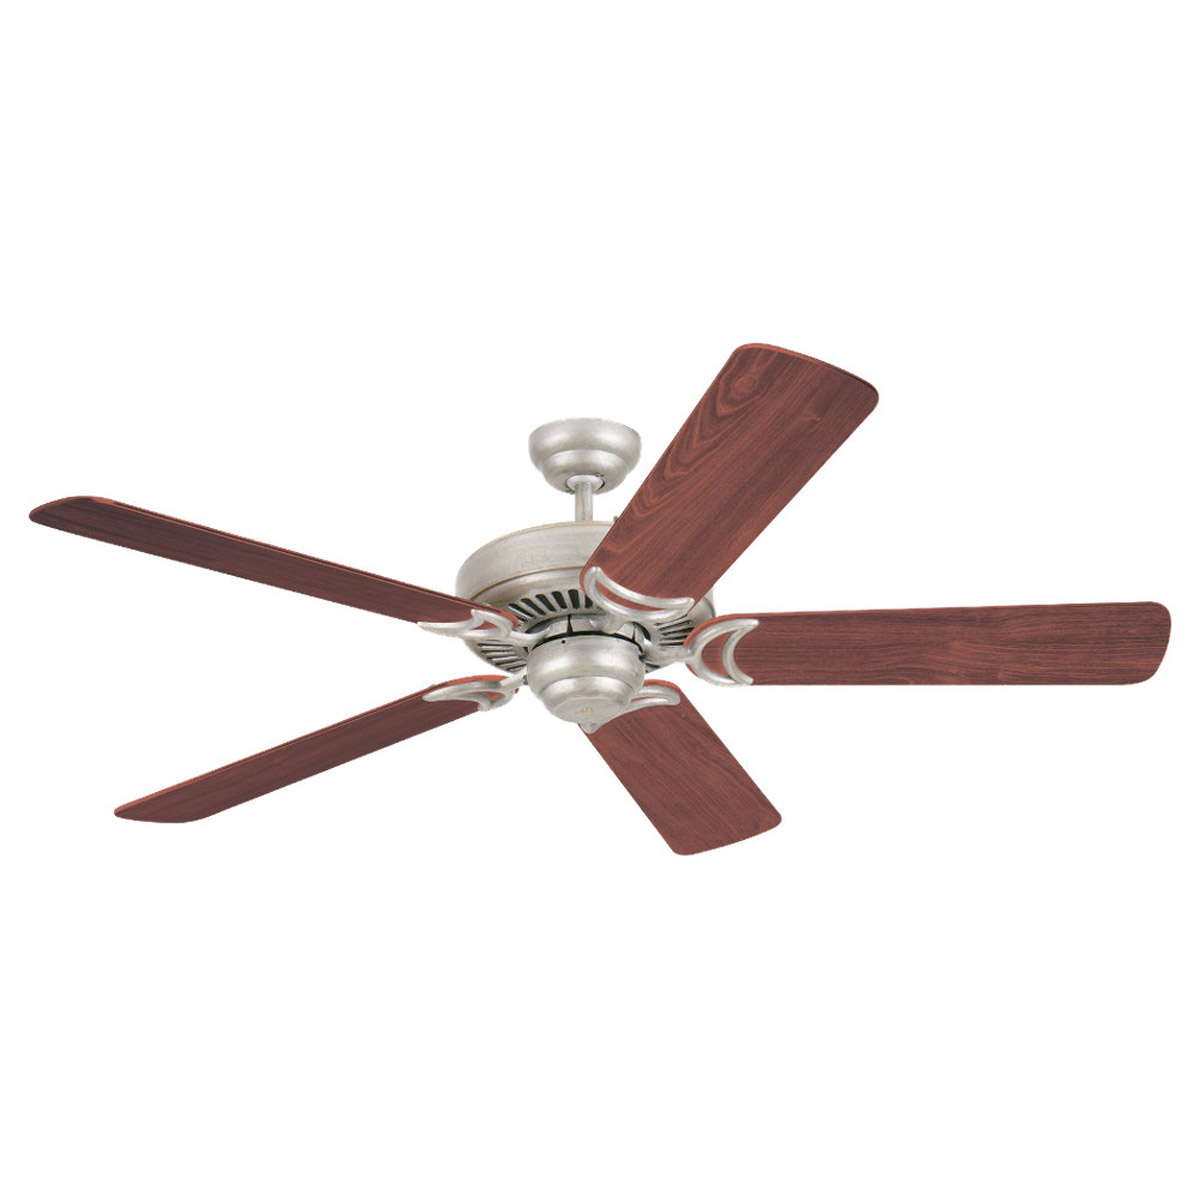 Sea Gull Lighting 52in Celebrity Deluxe Ceiling Fan in Brushed Nickel 1535-962 photo